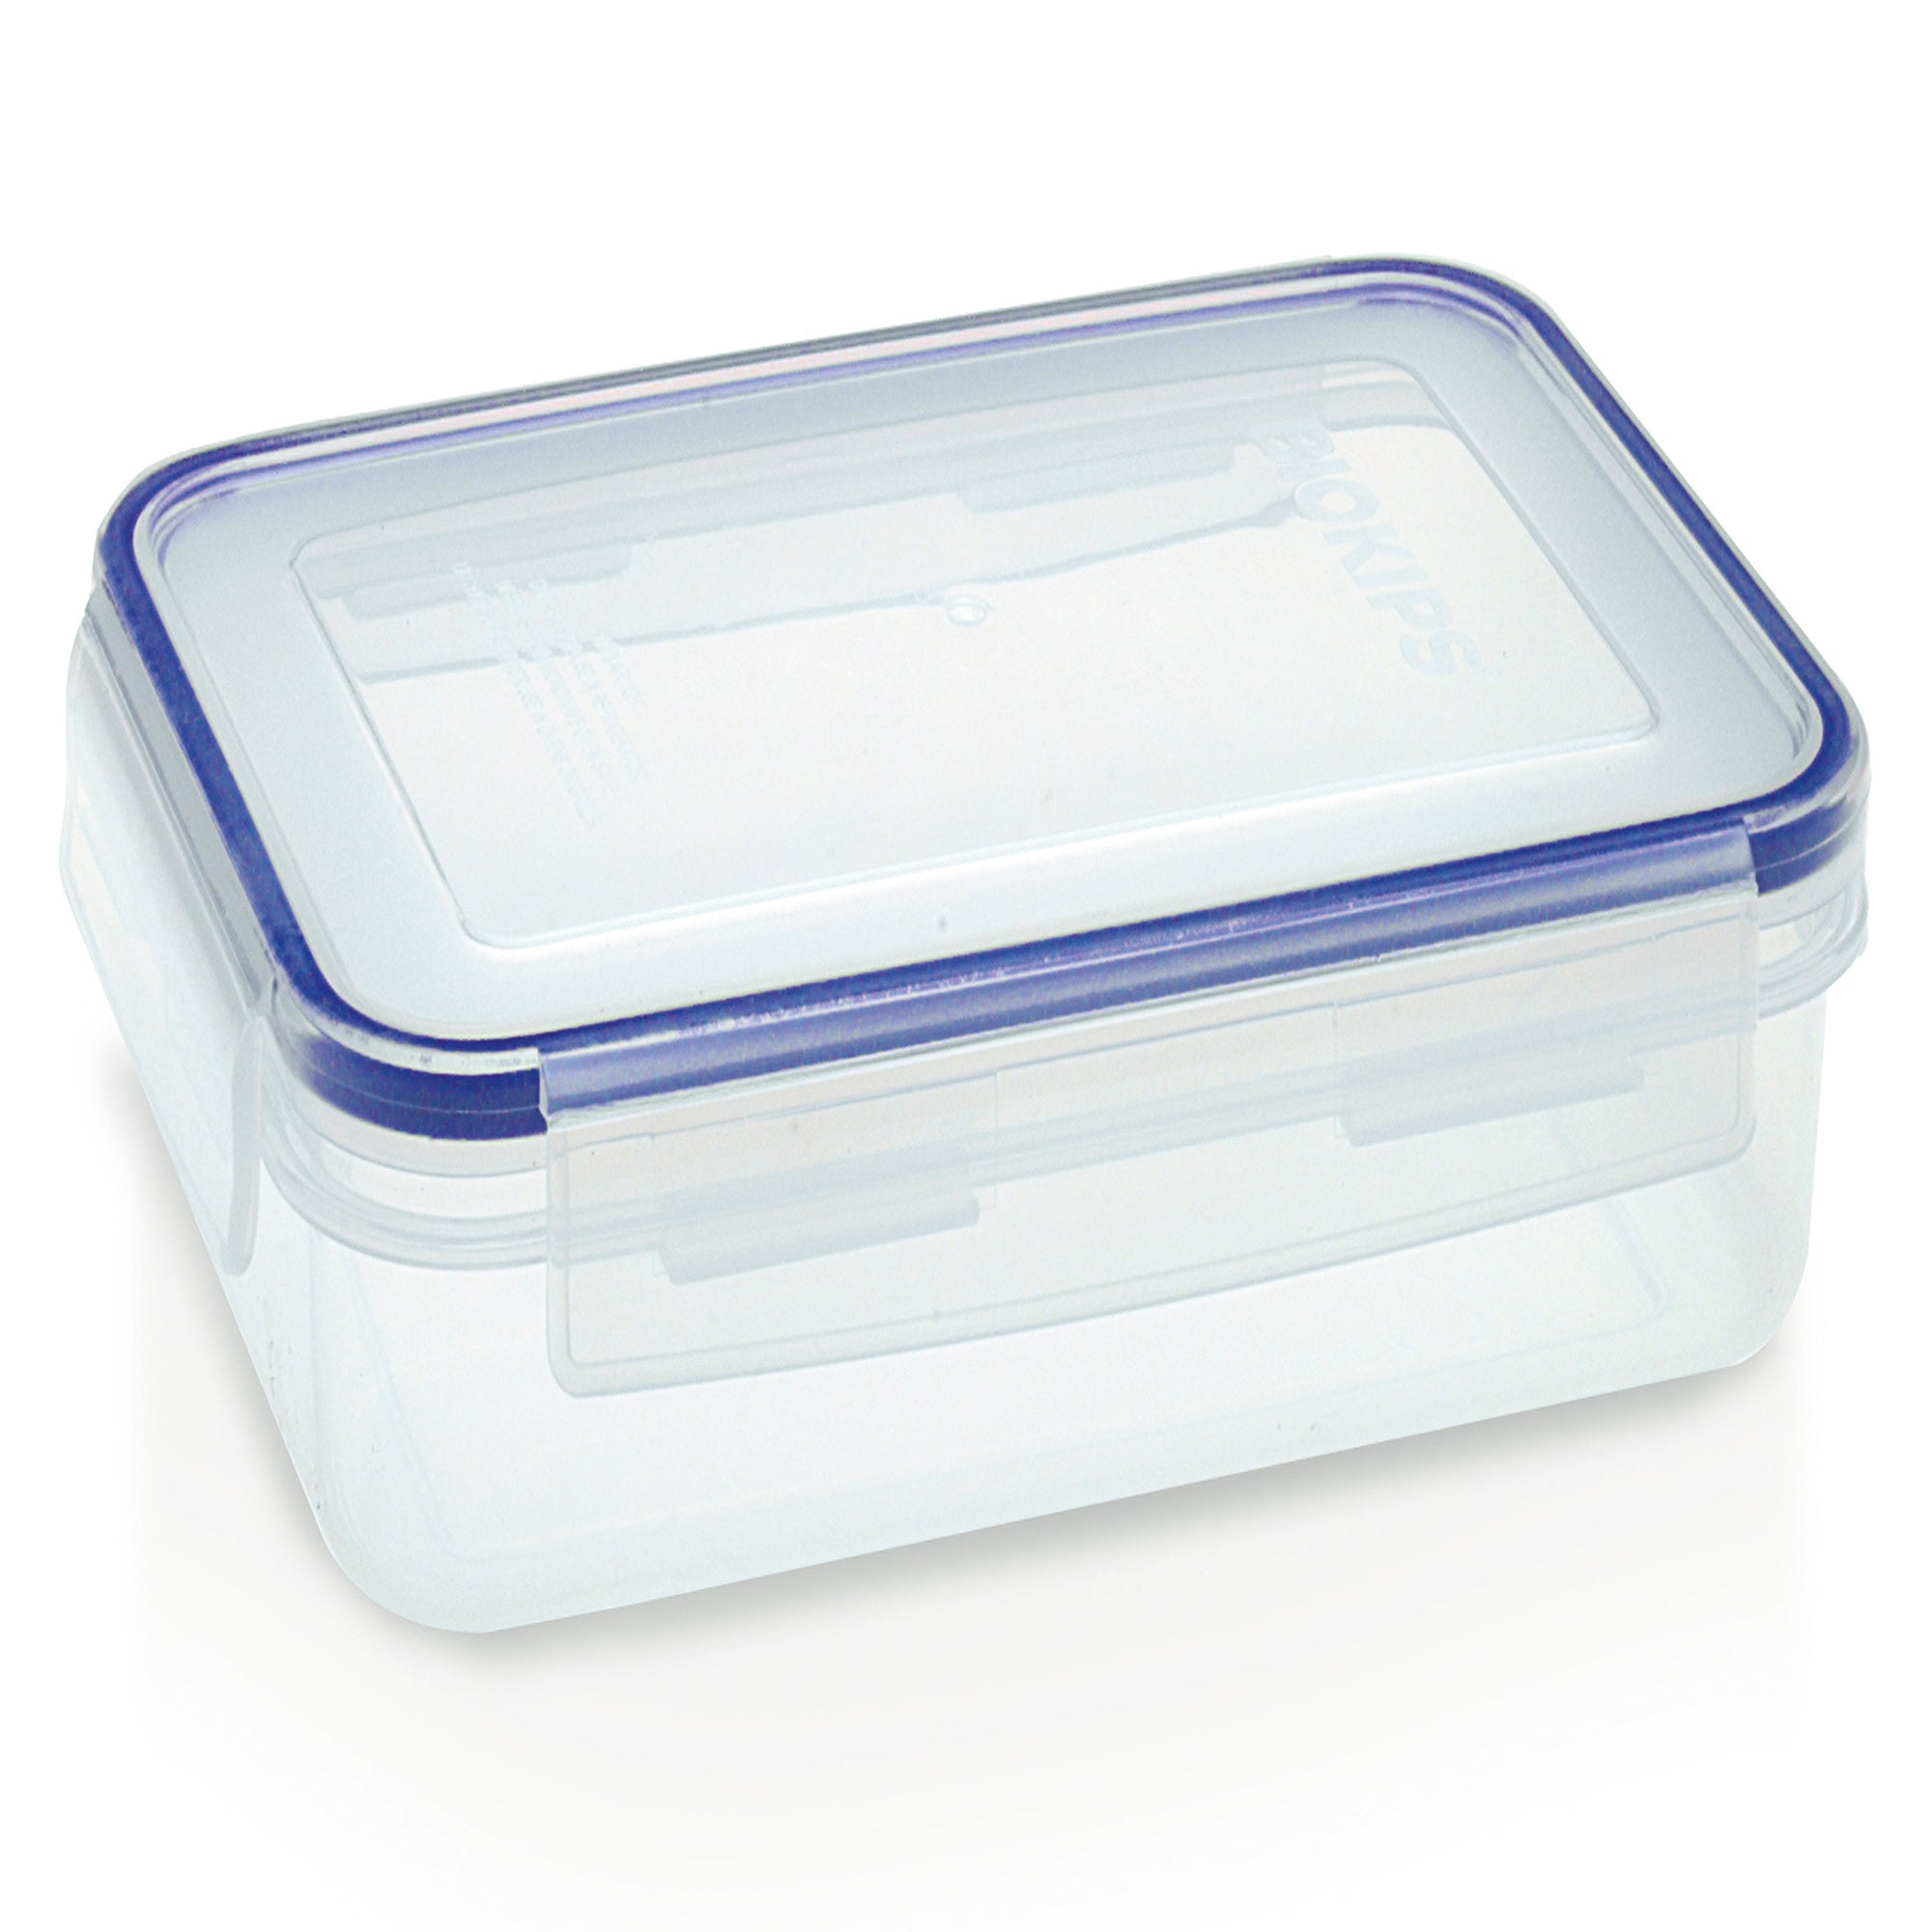 Addis Clip & Close Rectangular Food Storage Box